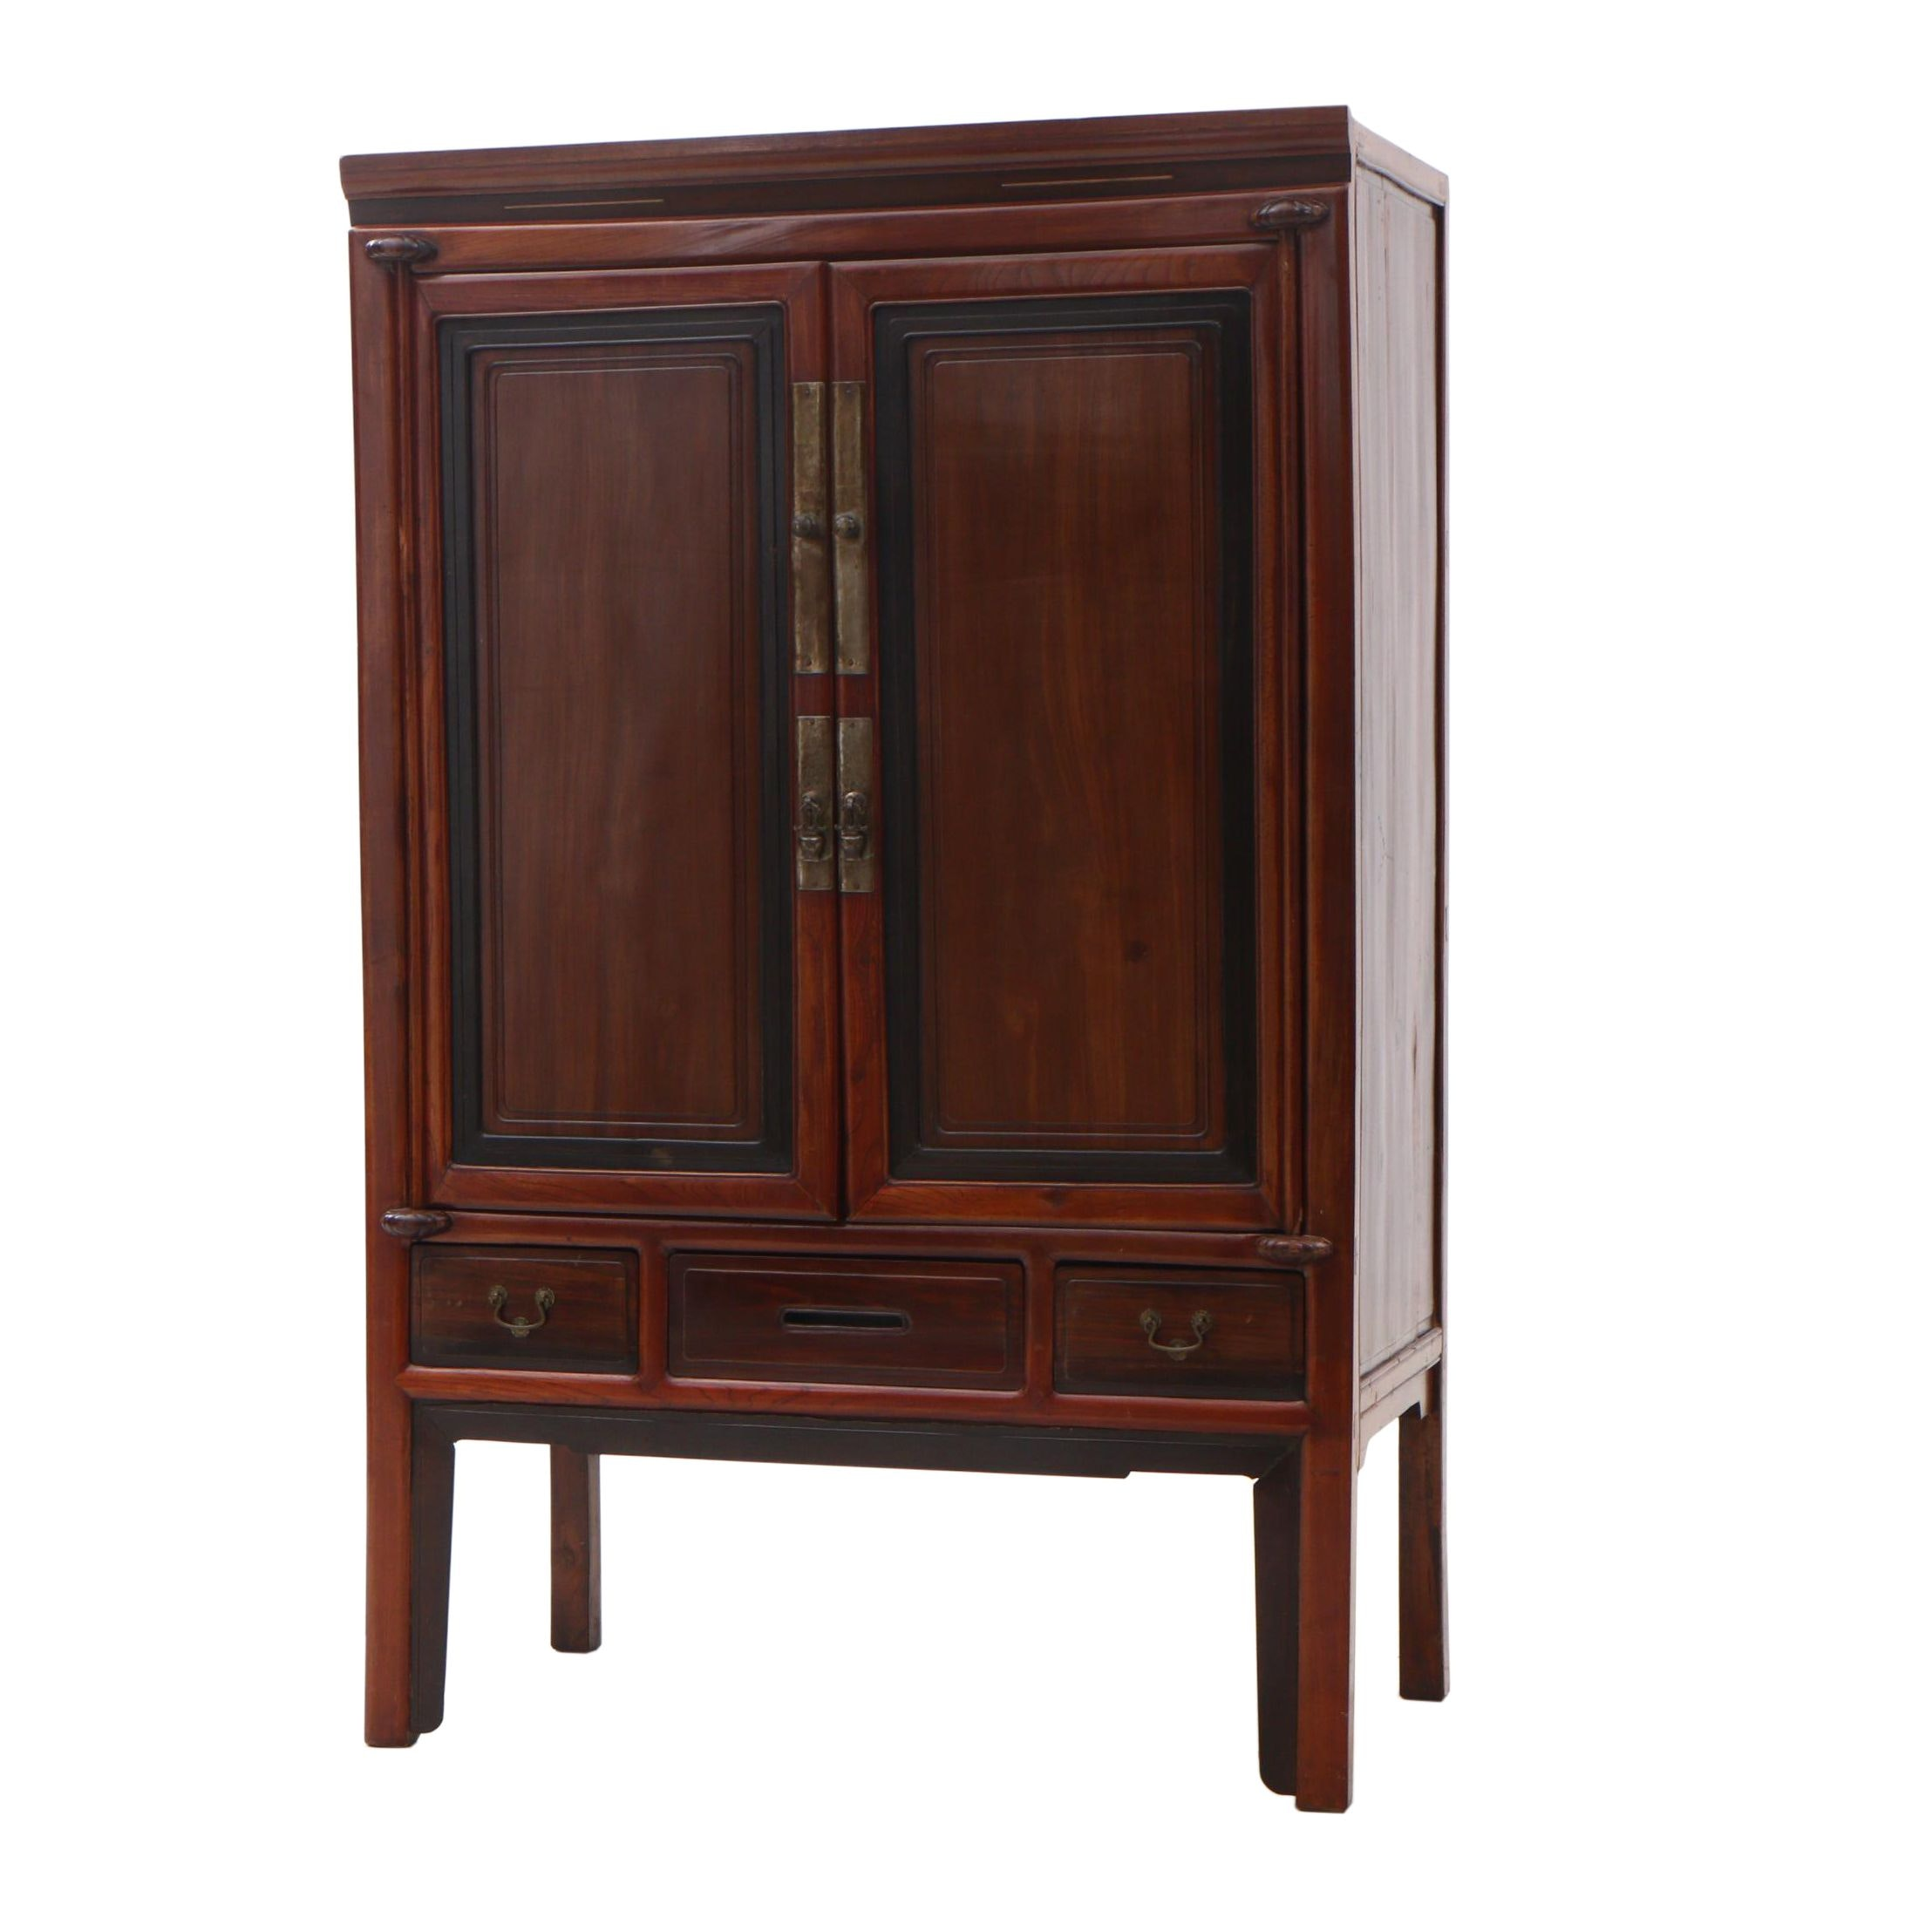 Chinese Elm and Pine Cabinet in Red Wash Finish, Contemporary